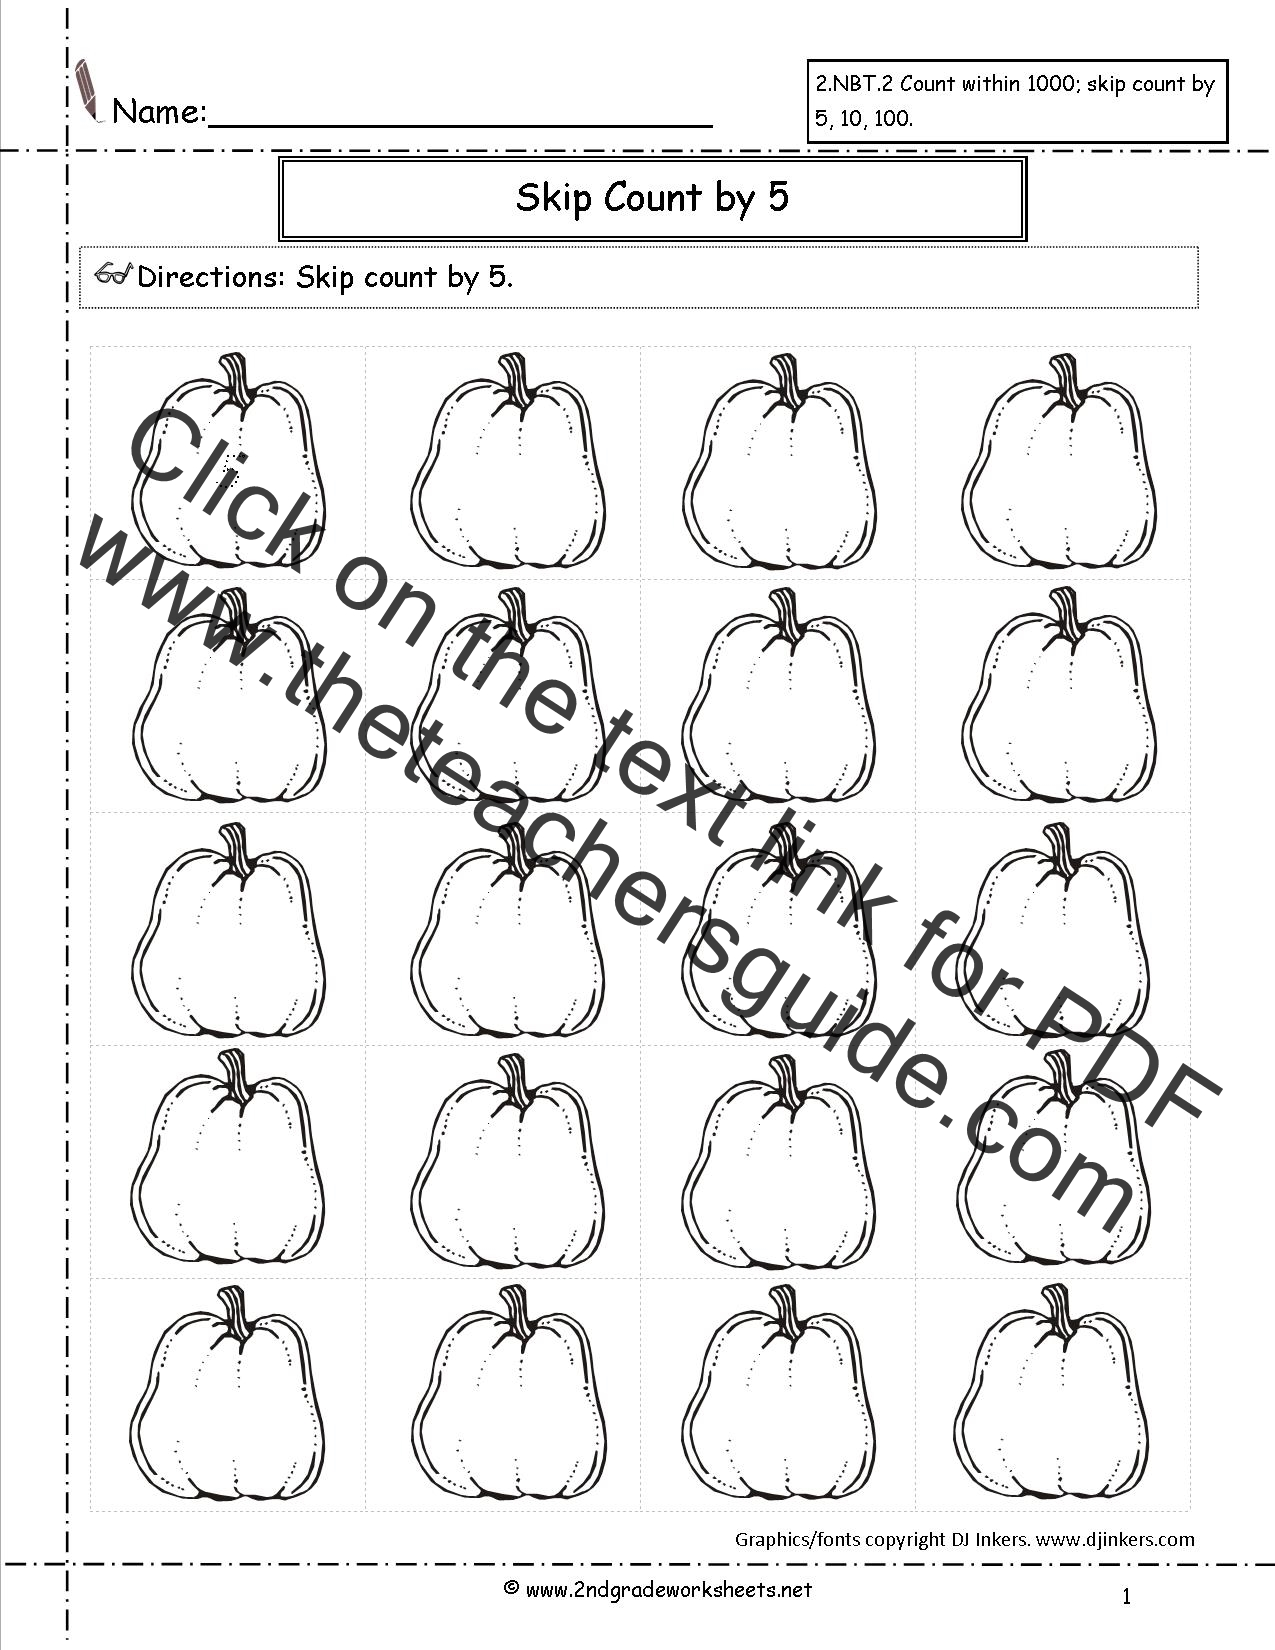 pumpkin skip count worksheet